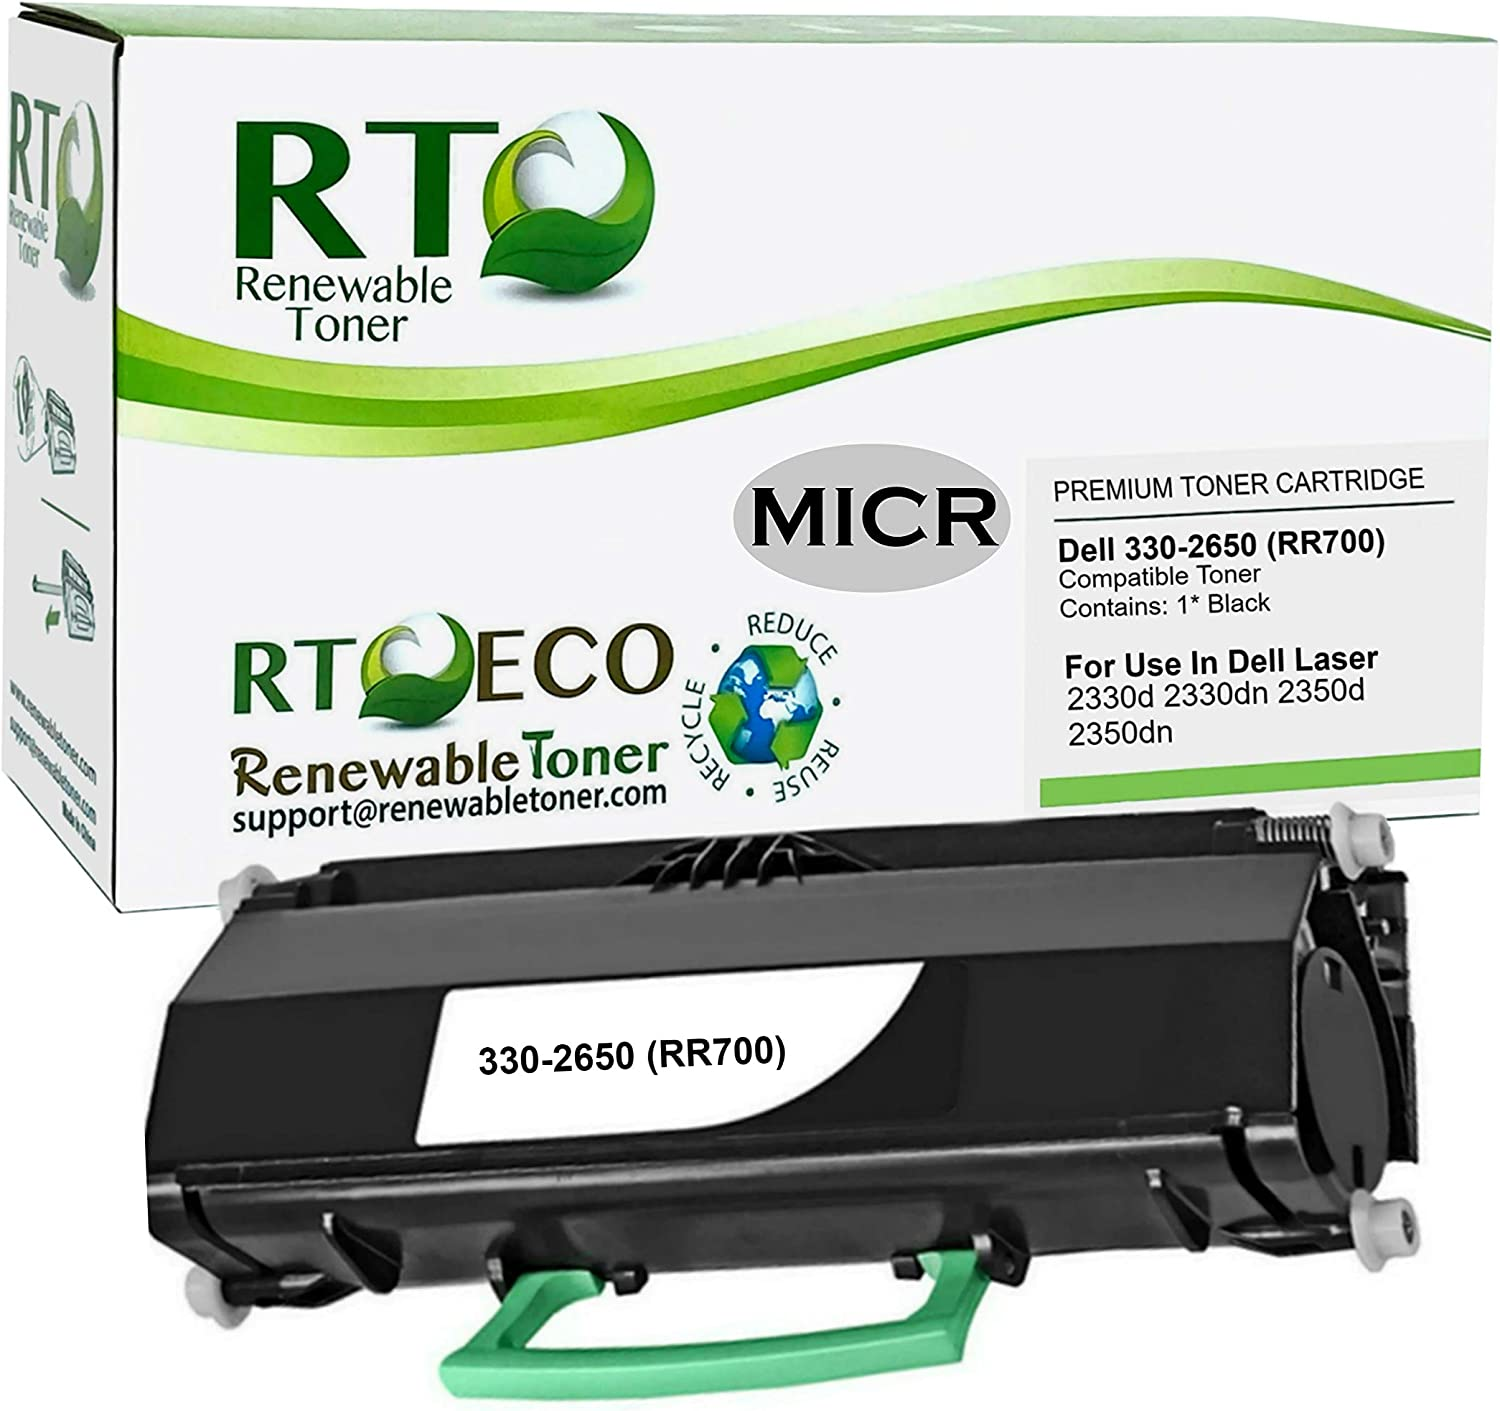 Renewable Toner Compatible MICR Toner Cartridge Replacement Dell 330-2650 330-2666 330-2667 for Check Printing on 2330d 2330dn 2350d 2350dn 5340dn